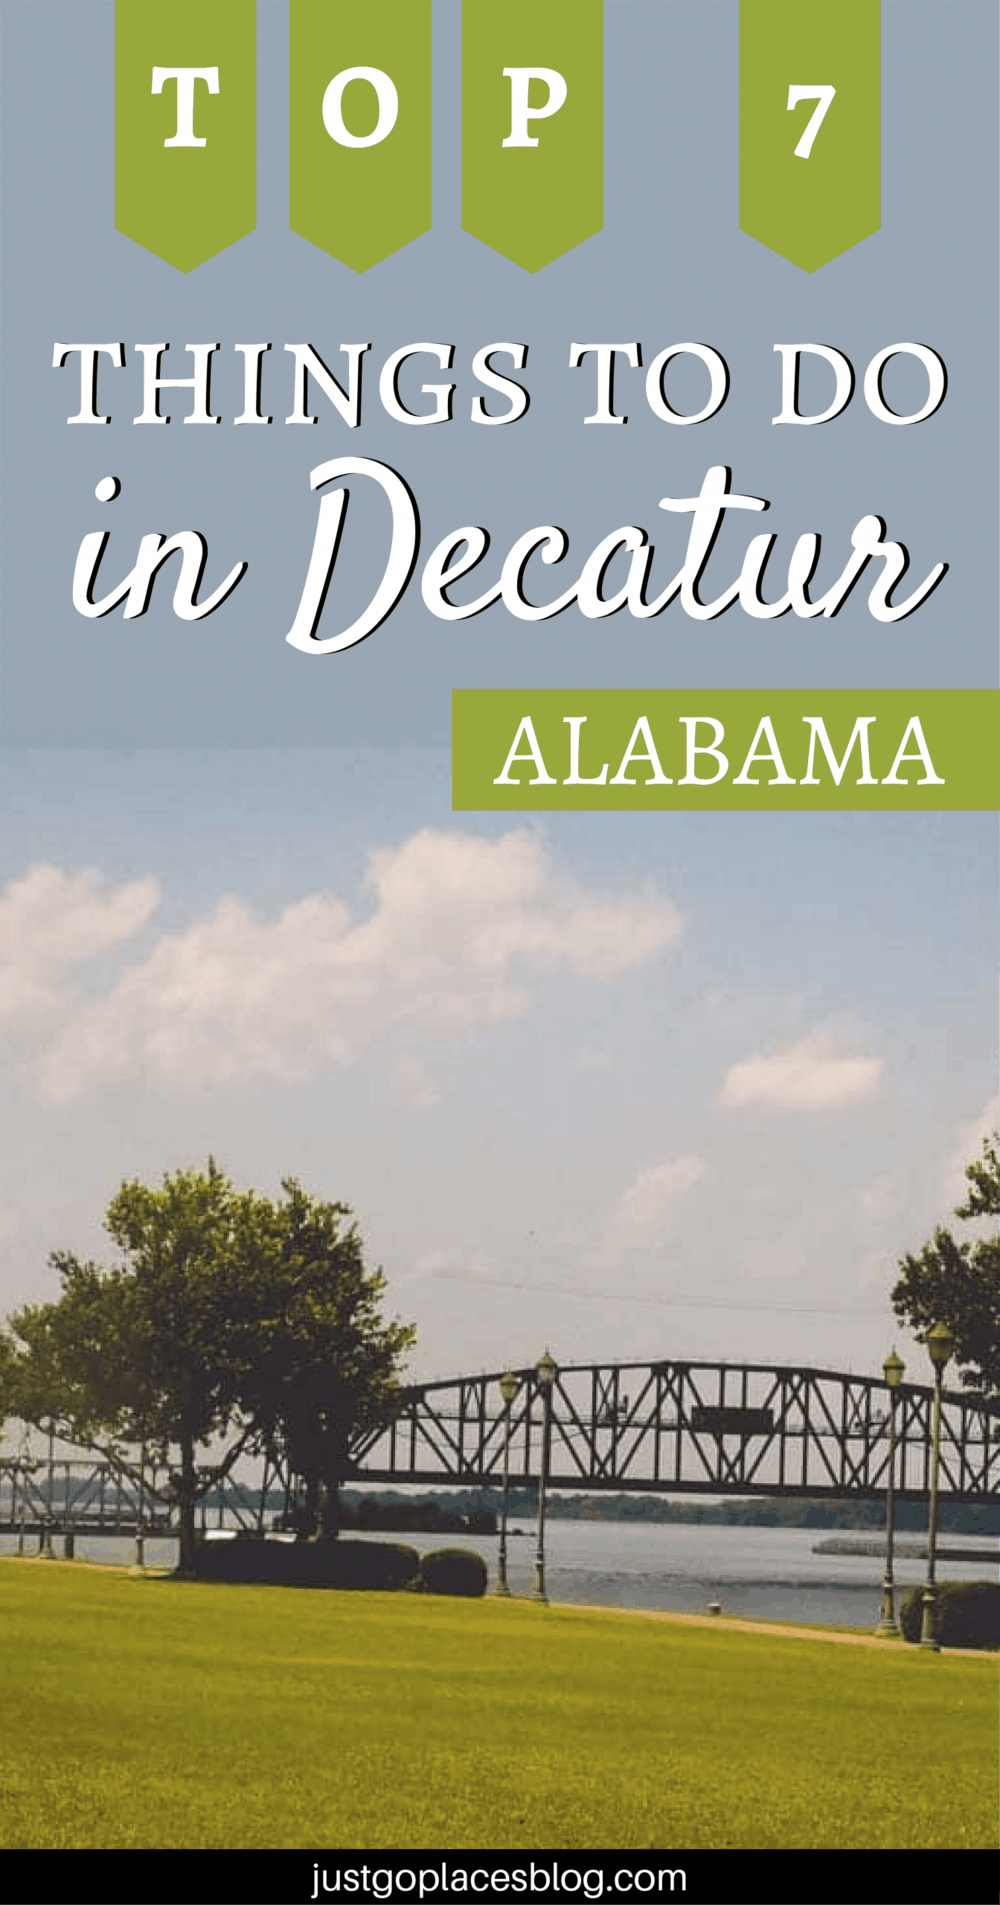 Top 7 Things To Do in Decatur Alabama